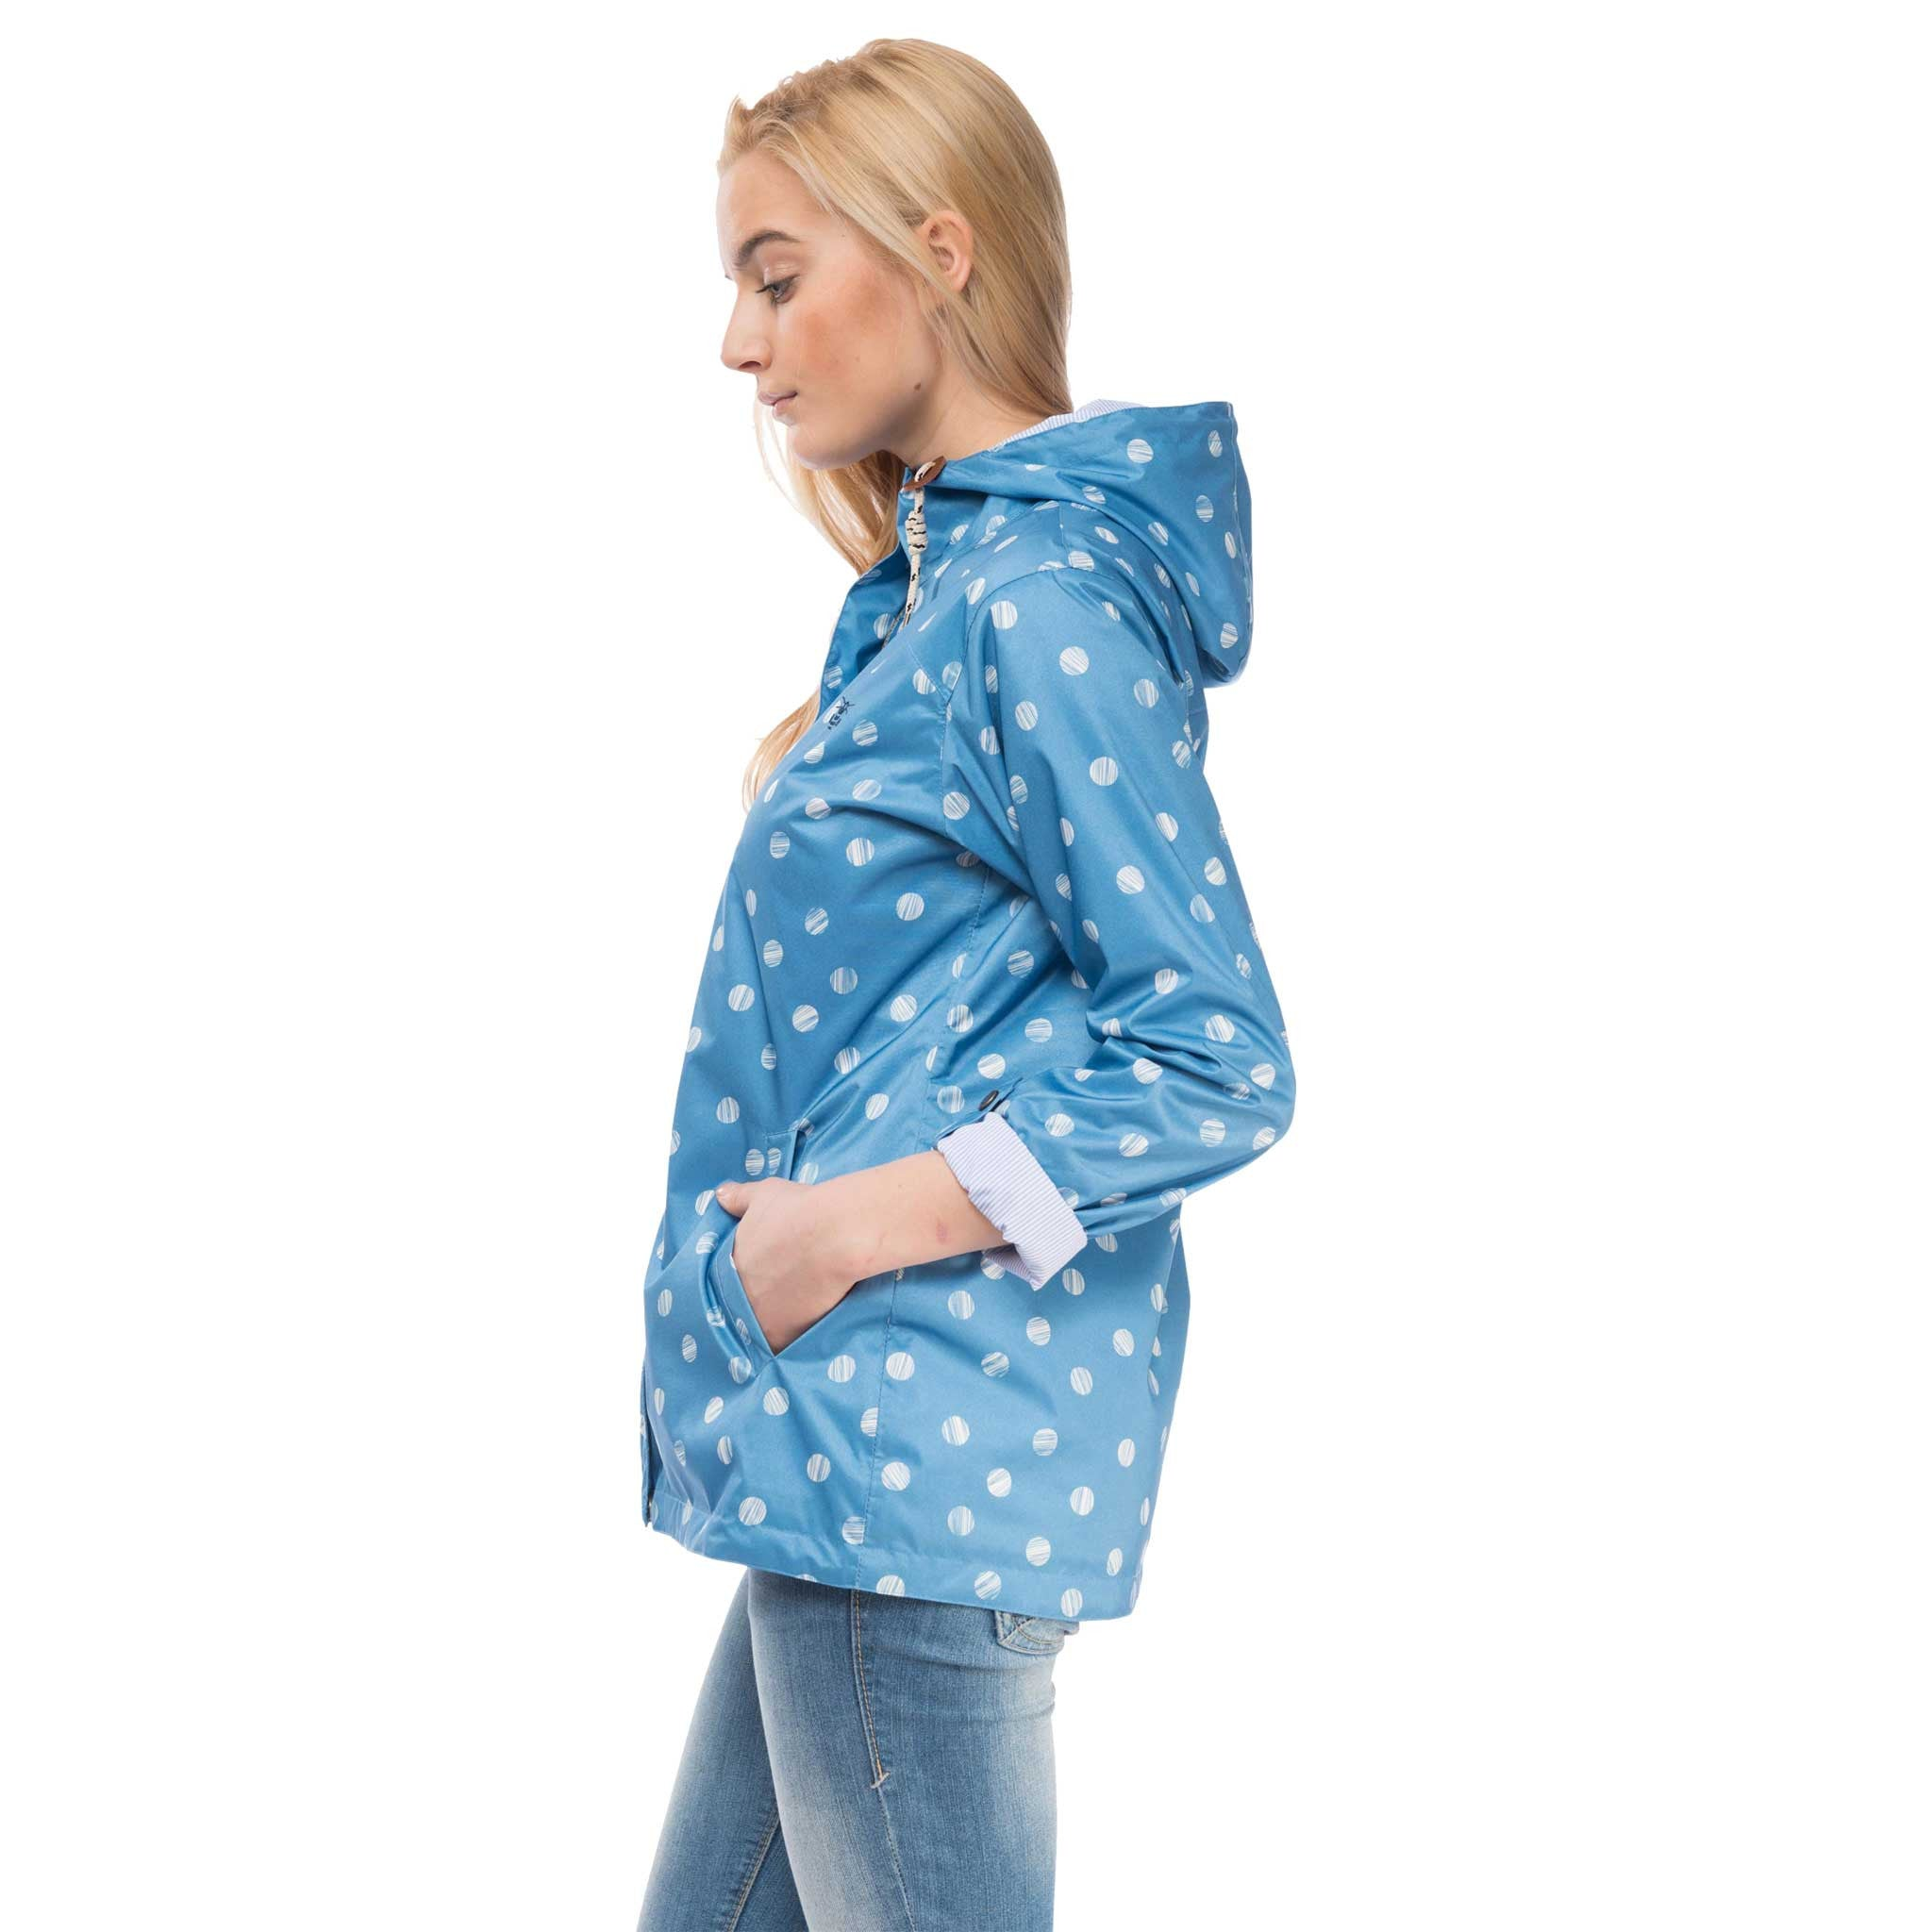 Bluejay Womens Waterproof Jacket in Marine Polka Dot Blue, Modelled Side View | Lighthouse